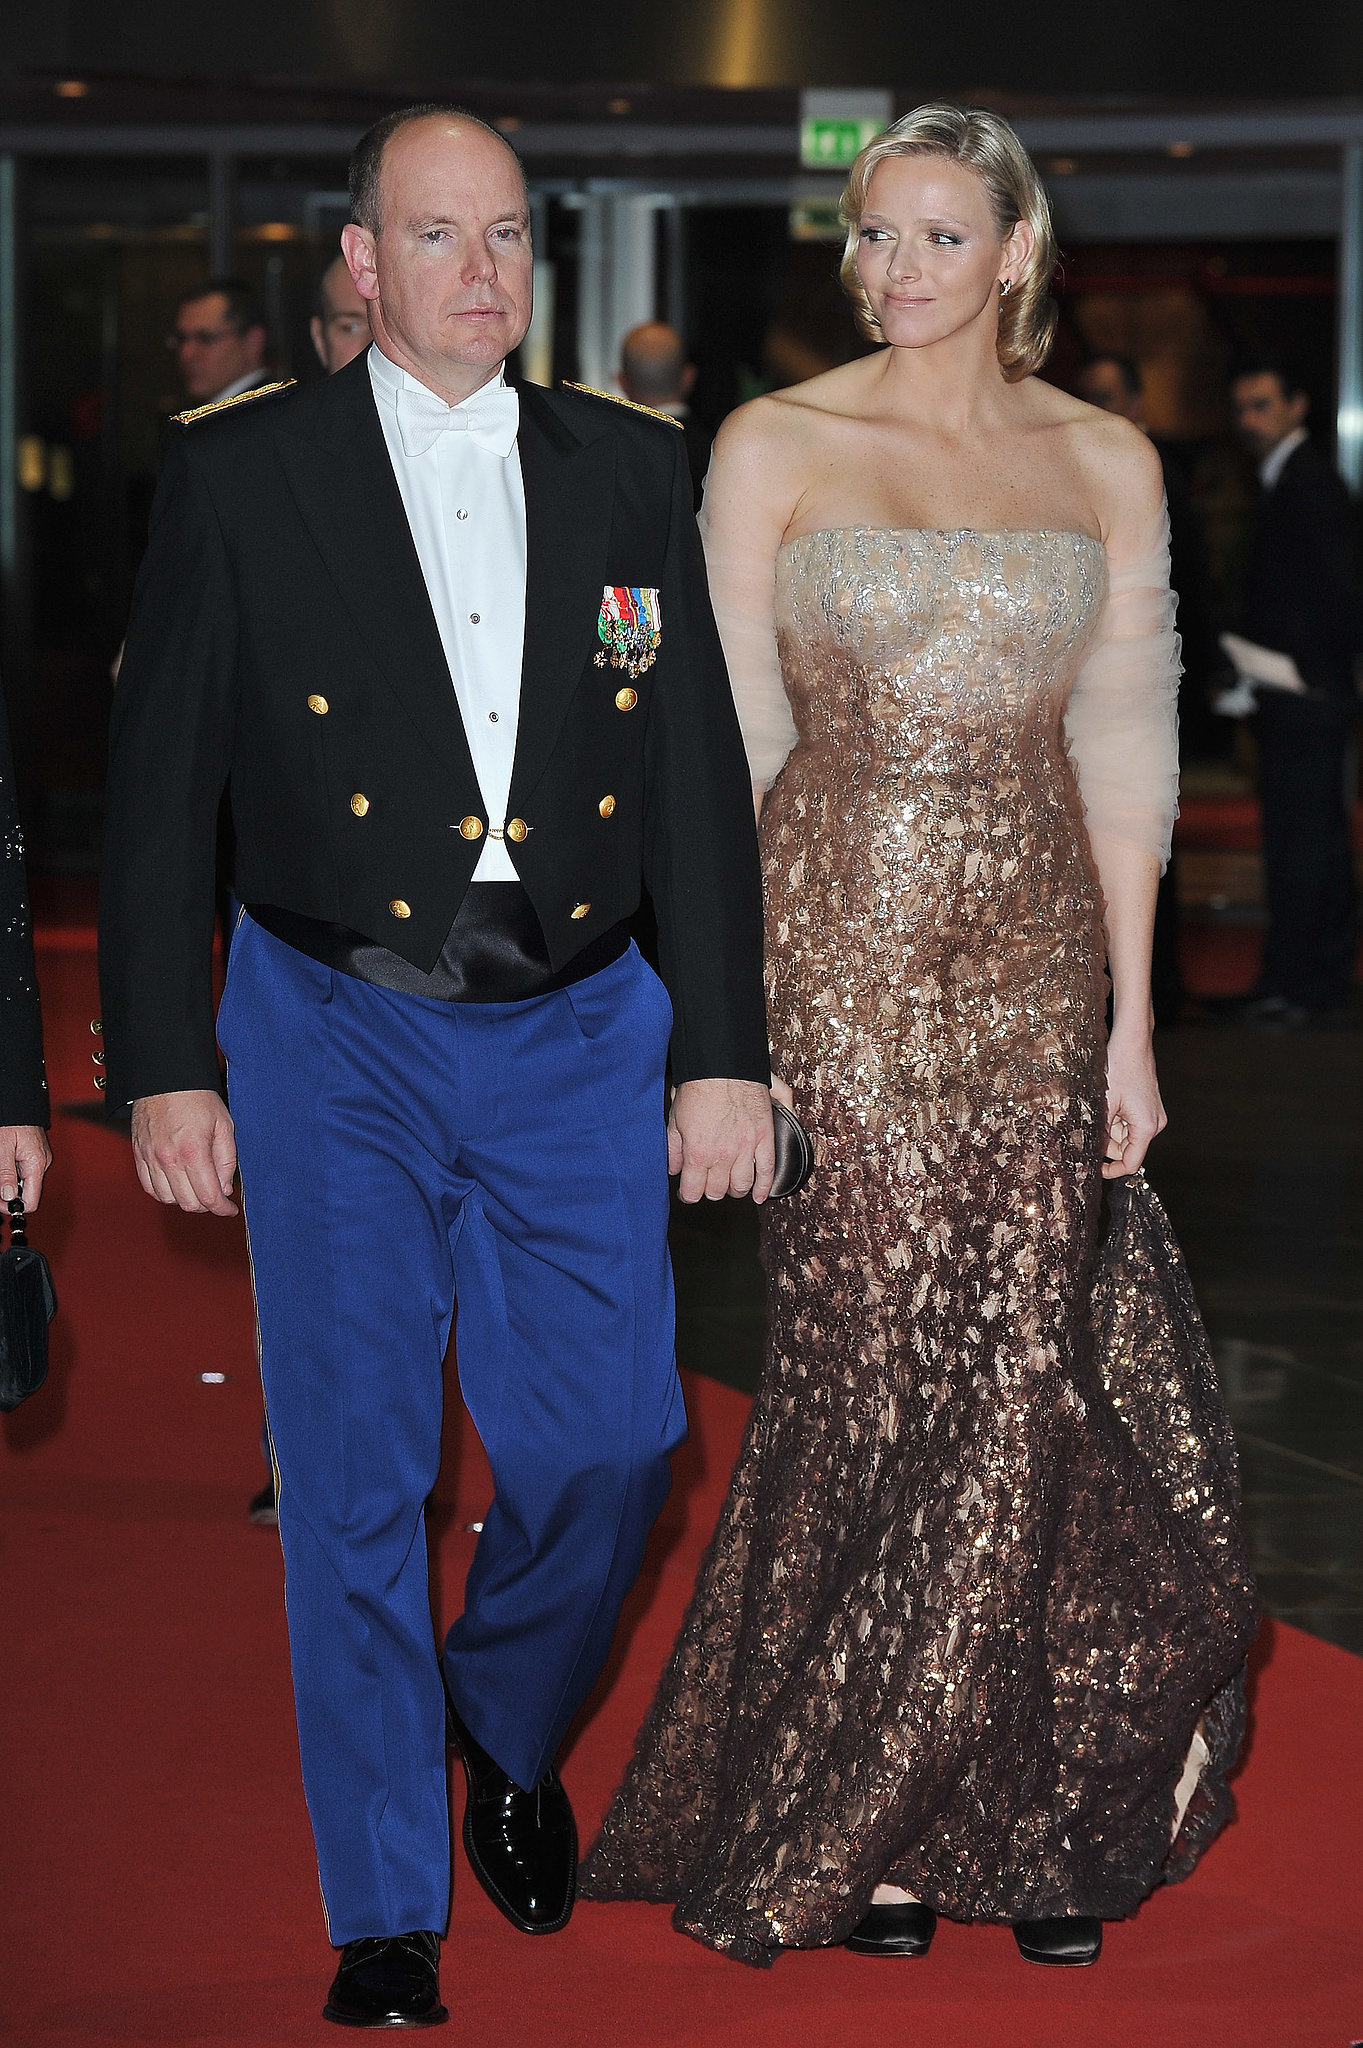 Prince Albert and Princess Charlene arrived at the Monaco National Day Gala in 2010. Source: Getty / Pascal Le Segretain